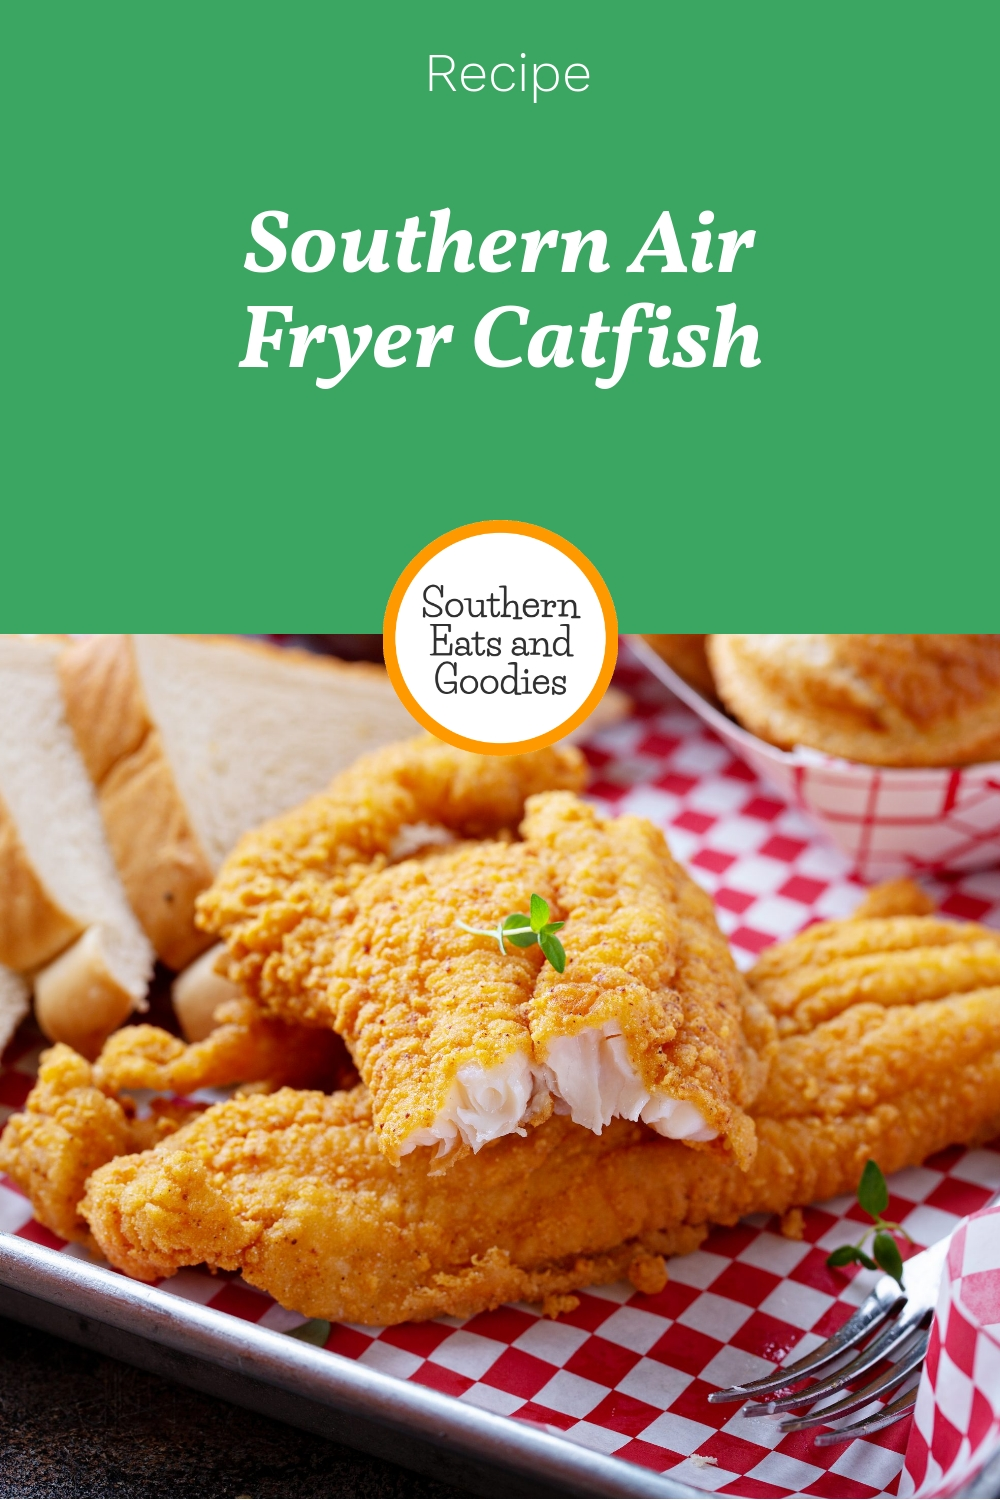 Southern Air Fryer Catfish